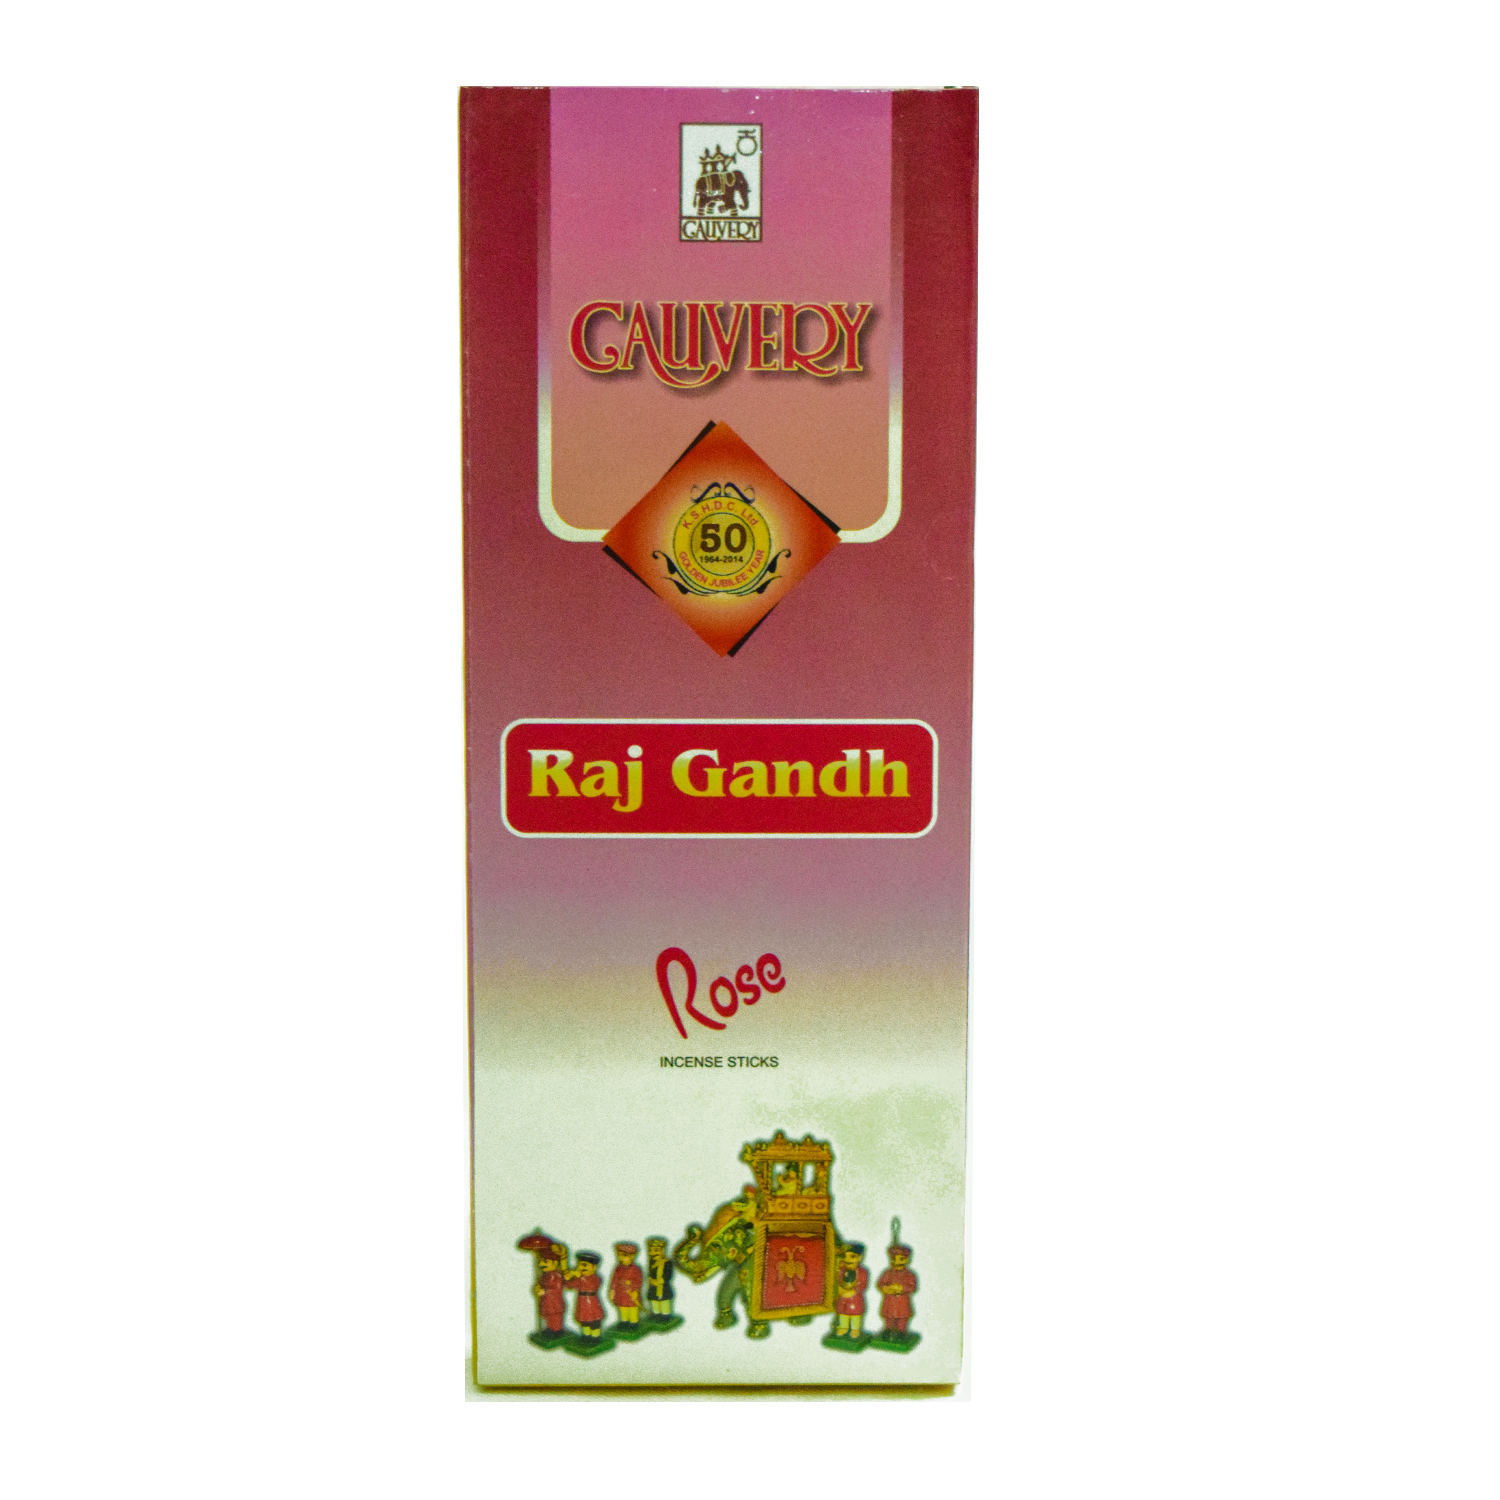 Cauvery Raj Gandh Rose Incense Sticks